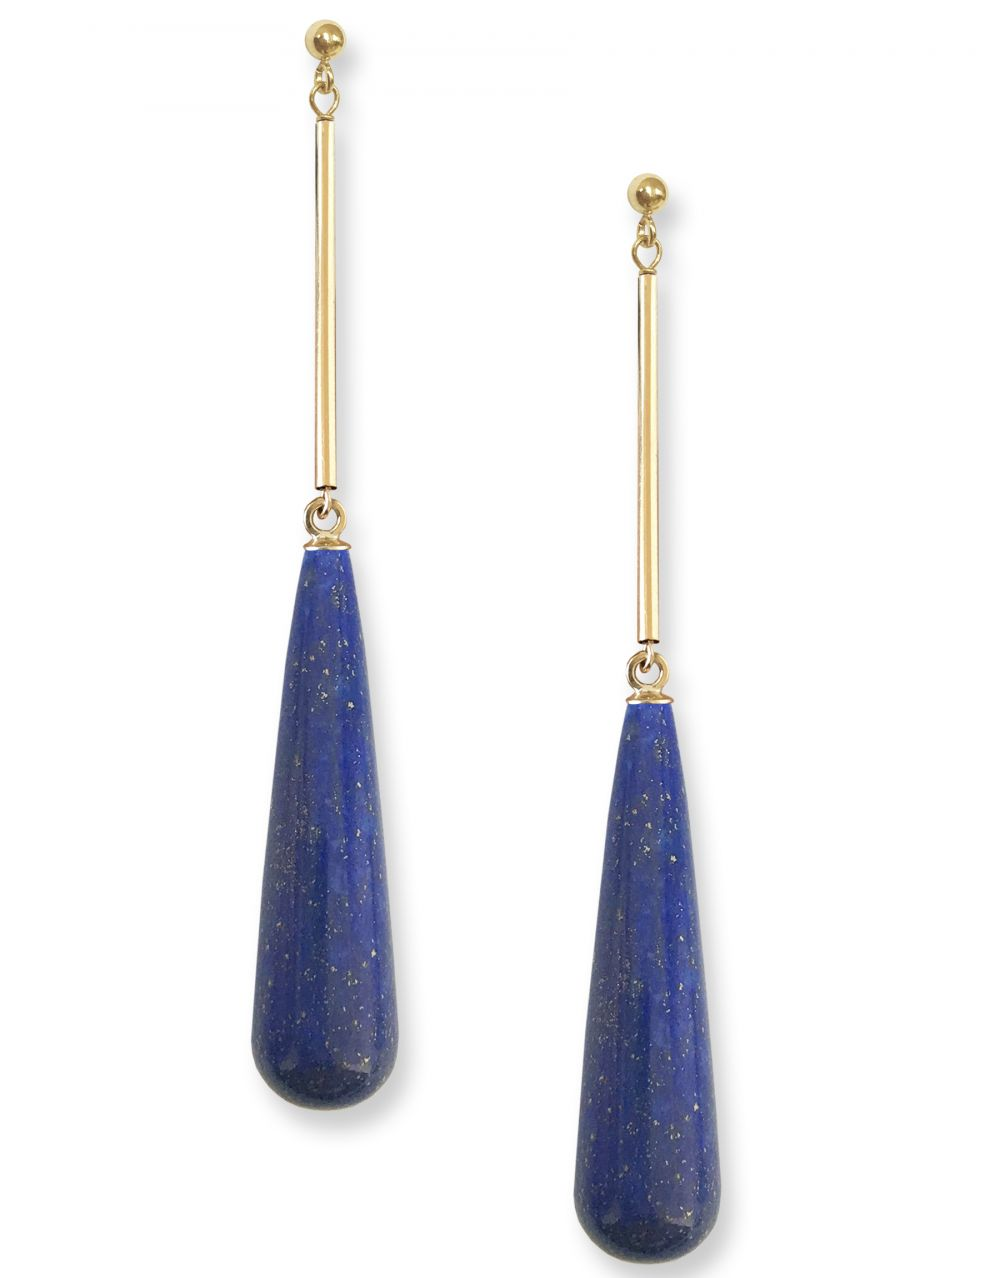 Ambrosia Earrings<br /><i><small>14K Yellow Gold with Lapis Lazuli</small></i><br />